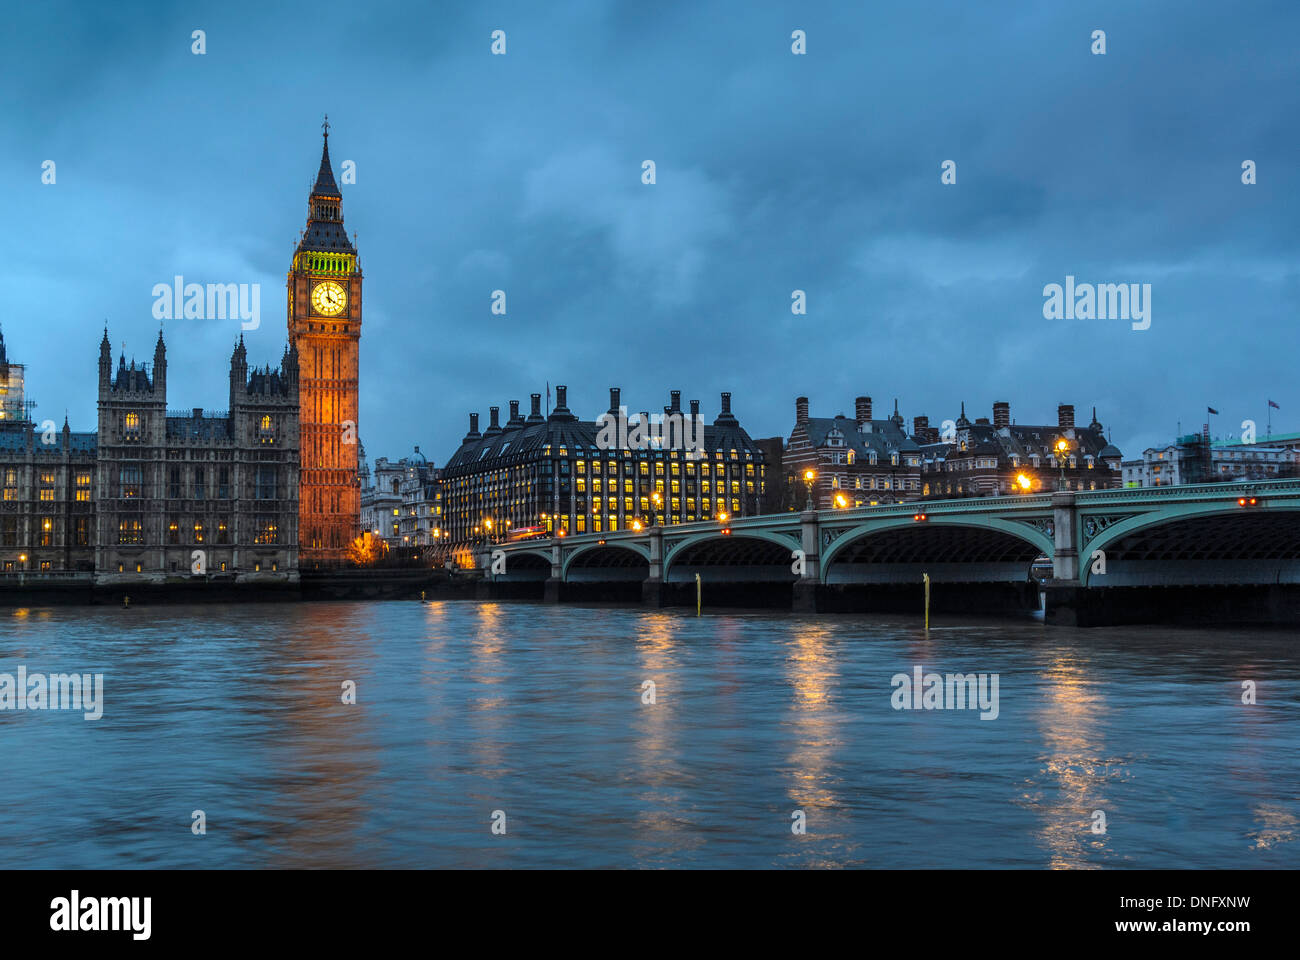 Big Ben and Houses of Parliament, Westminster, London. - Stock Image